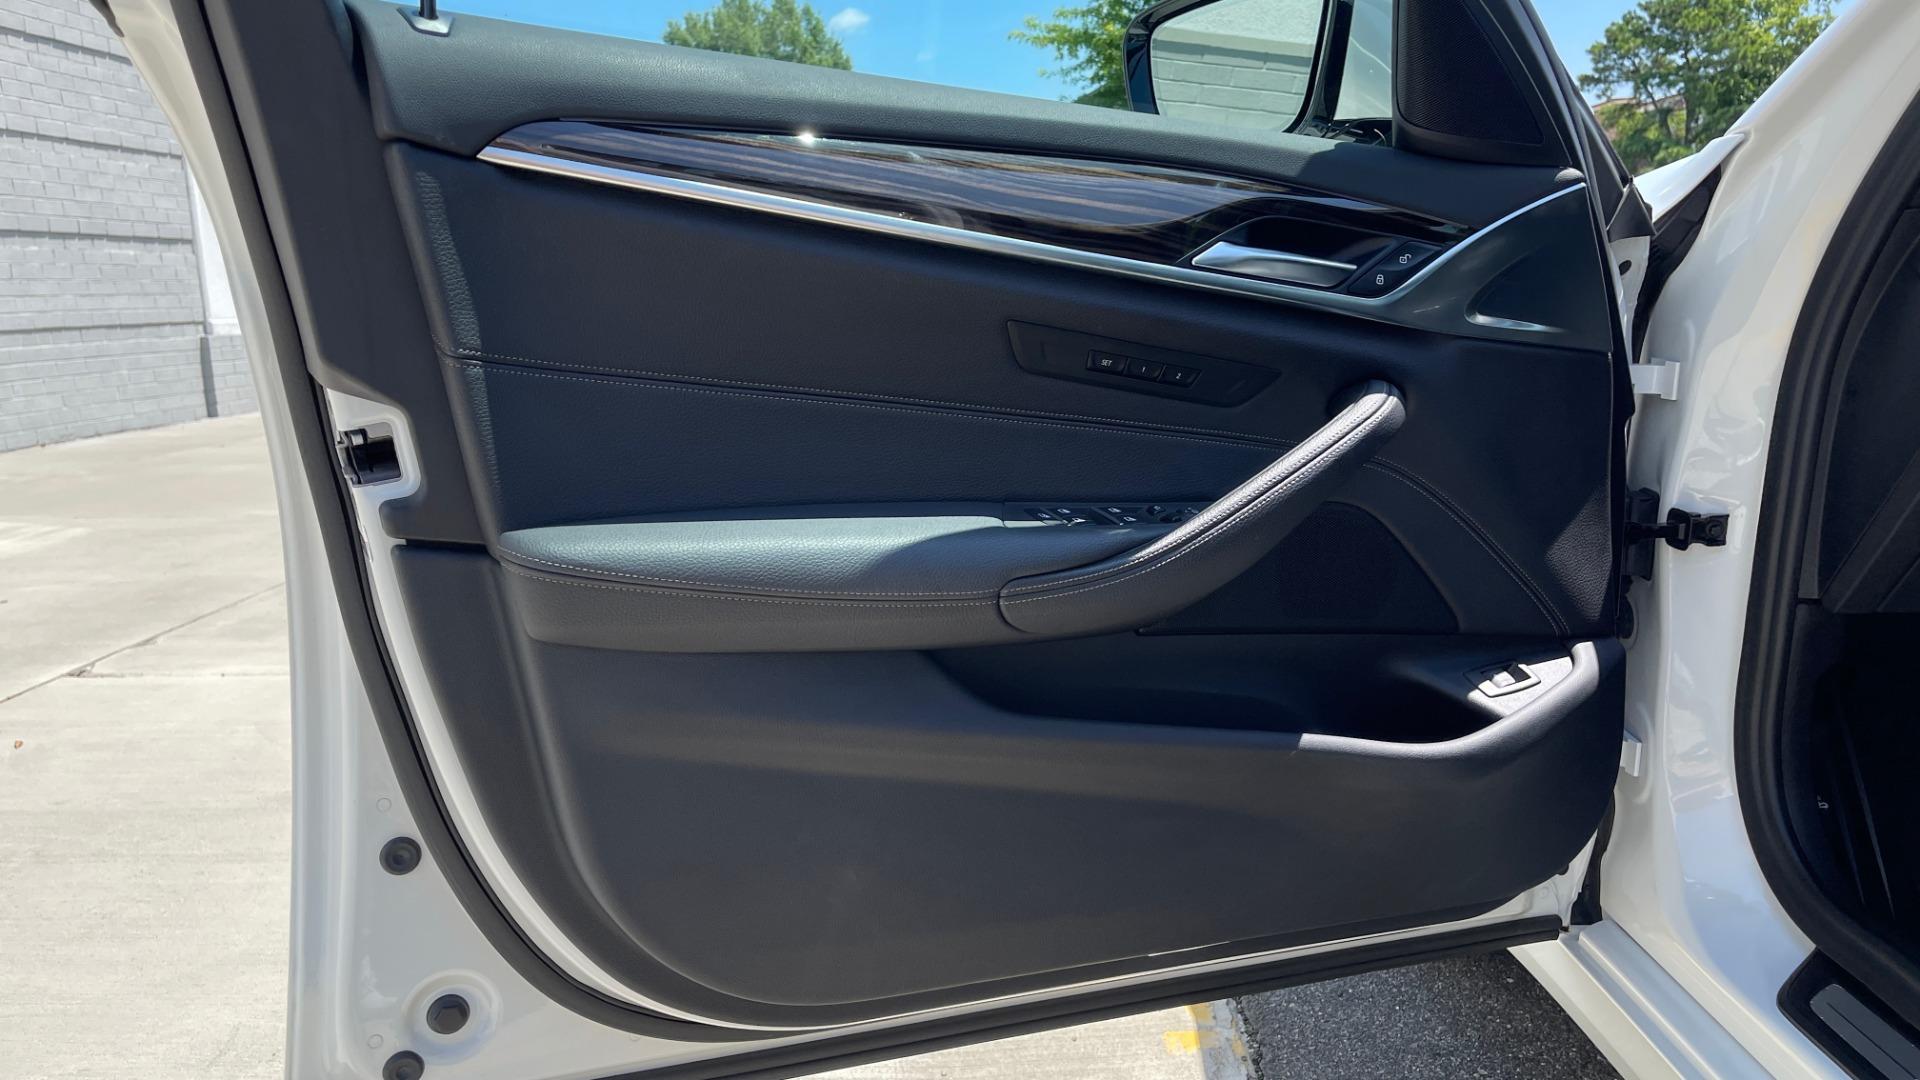 Used 2018 BMW 5 SERIES 540IXDRIVE PREMIUM / PARK ASSIST / KEYLESS ENTRY / SUNROOF / REARVIEW for sale $42,995 at Formula Imports in Charlotte NC 28227 27